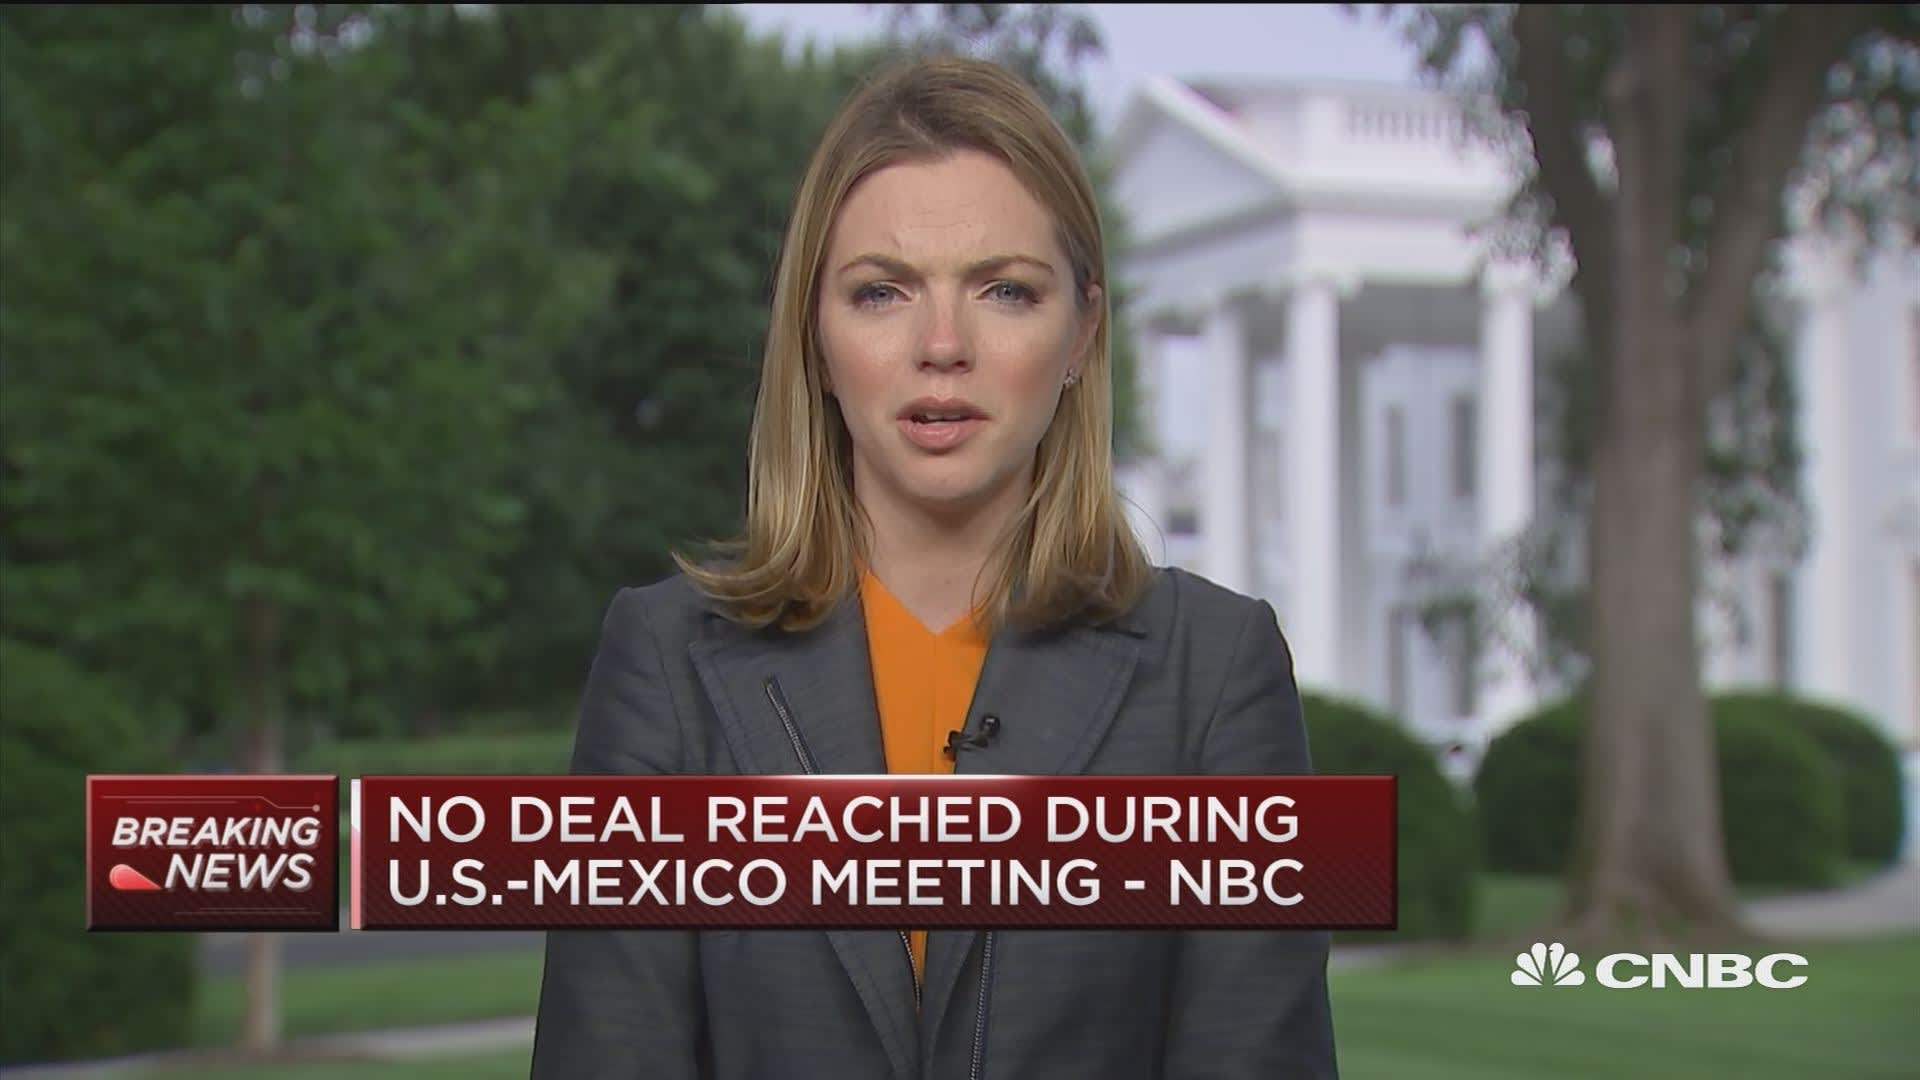 No deal reached during U S -Mexico trade talks